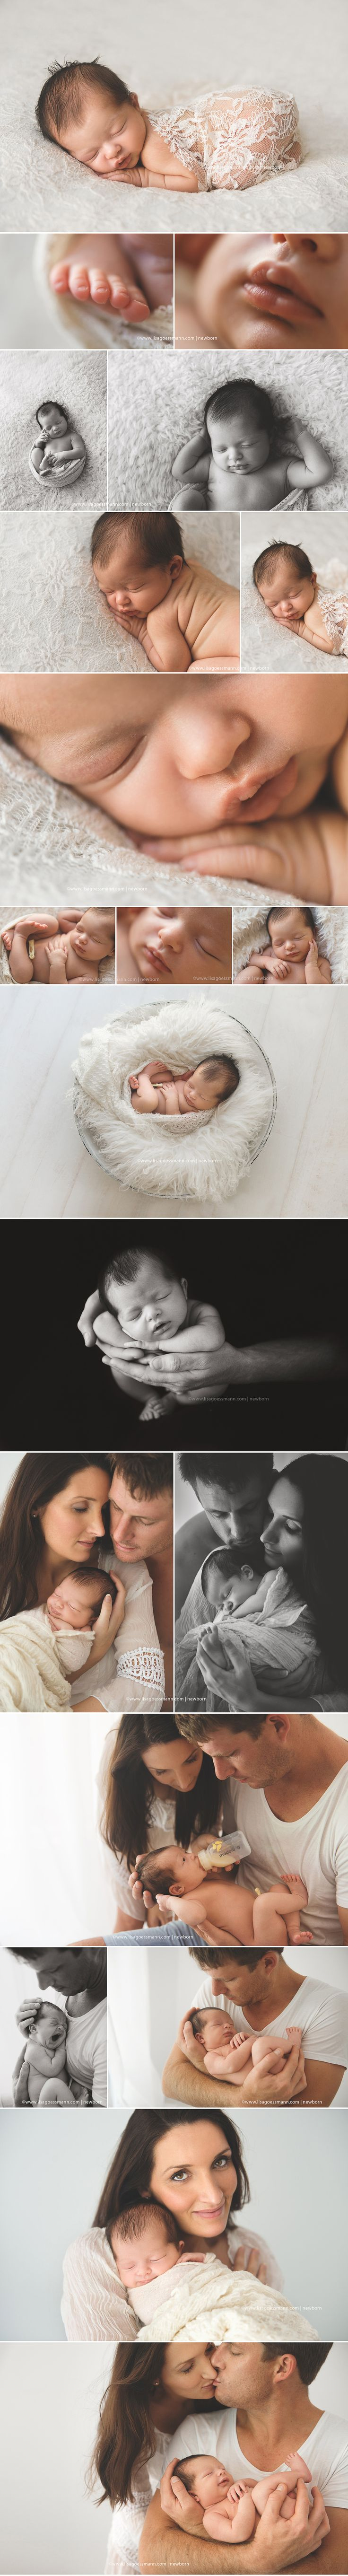 Matilda | Perth Maternity and Newborn Photographer » Perth Baby Photographer Lisa Goessmann Modern Photography Newborn Photography babies and pregnancy